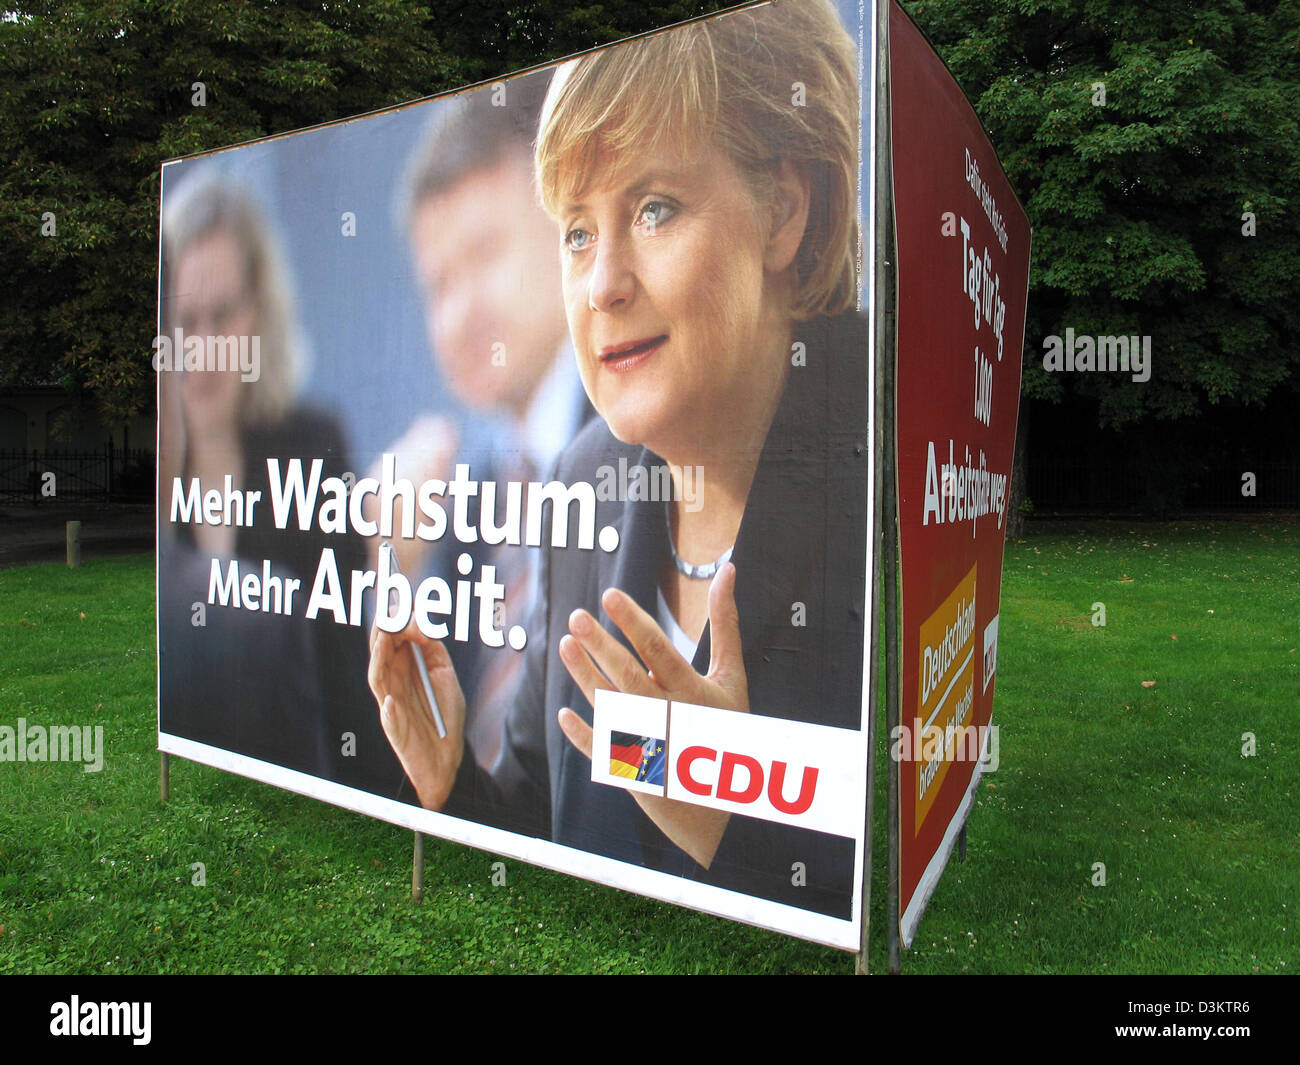 (dpa) - Angela Merkel, chairwoman of the Christian Democratic Party (CDU) and her party's top candidate for the chancellorship in Germany, is featured on an election poster of the CDU, which reads 'More growth, more jobs',  ahead of the general elections for the German Bundestag parliament on 18 September 2005, pictured in the state of North Rhine Westphalia, Germany on 23 August 2 Stock Photo